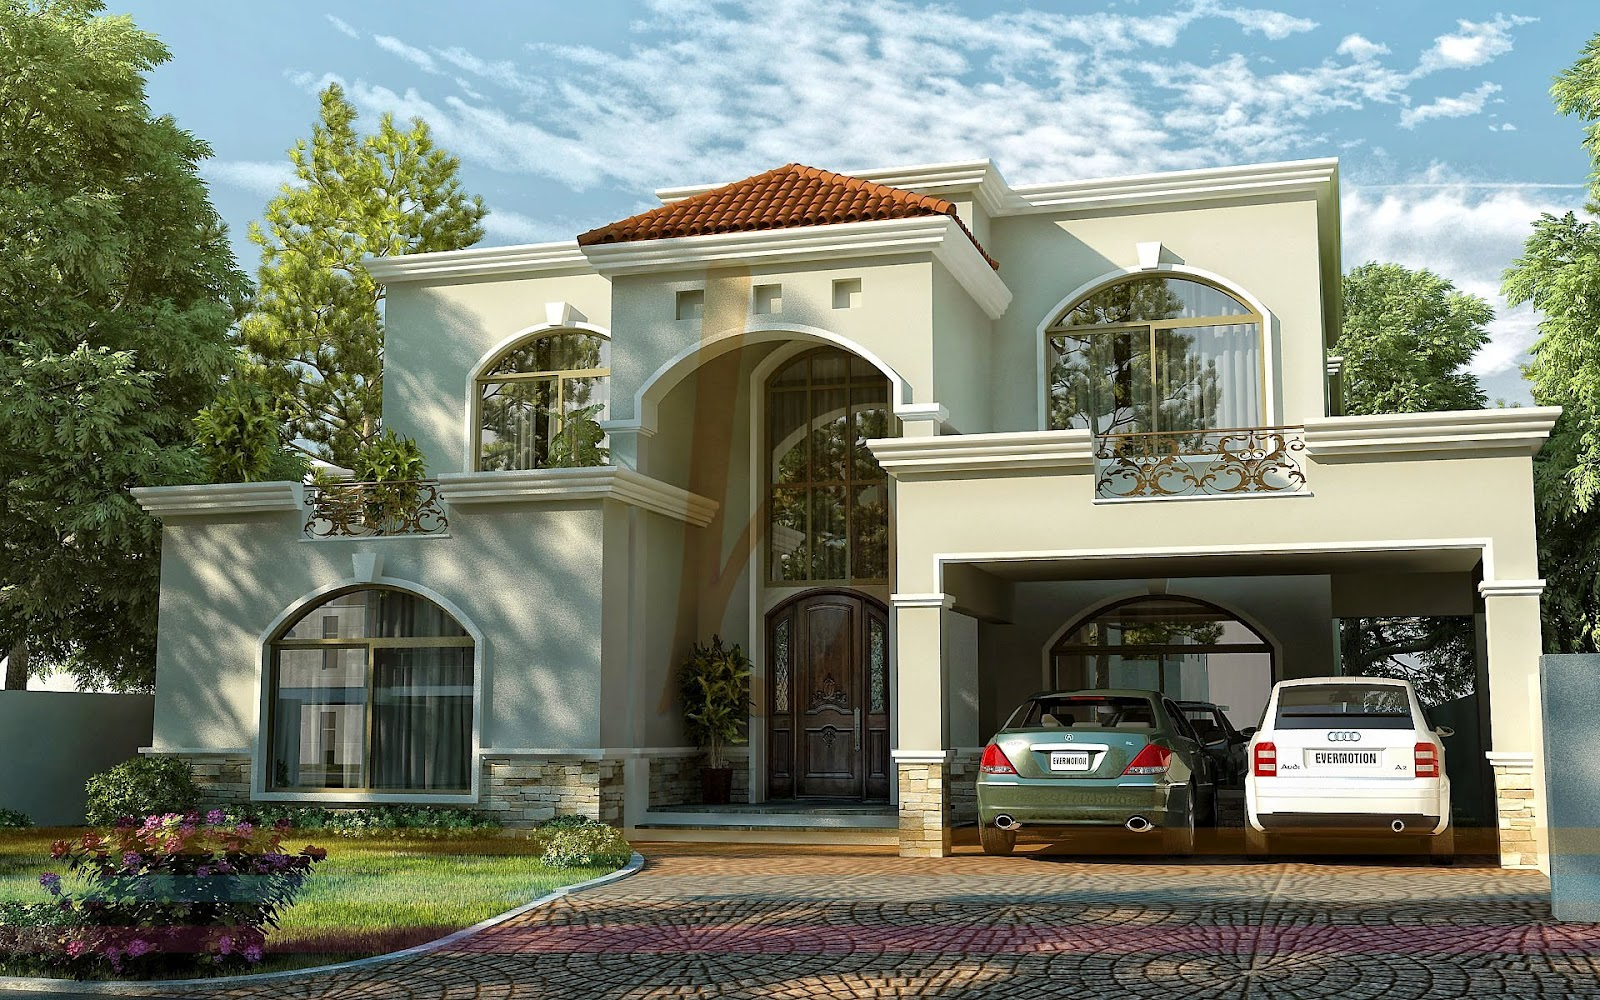 1 Kanal House Front Elevation : New gate design house in pakistan modern